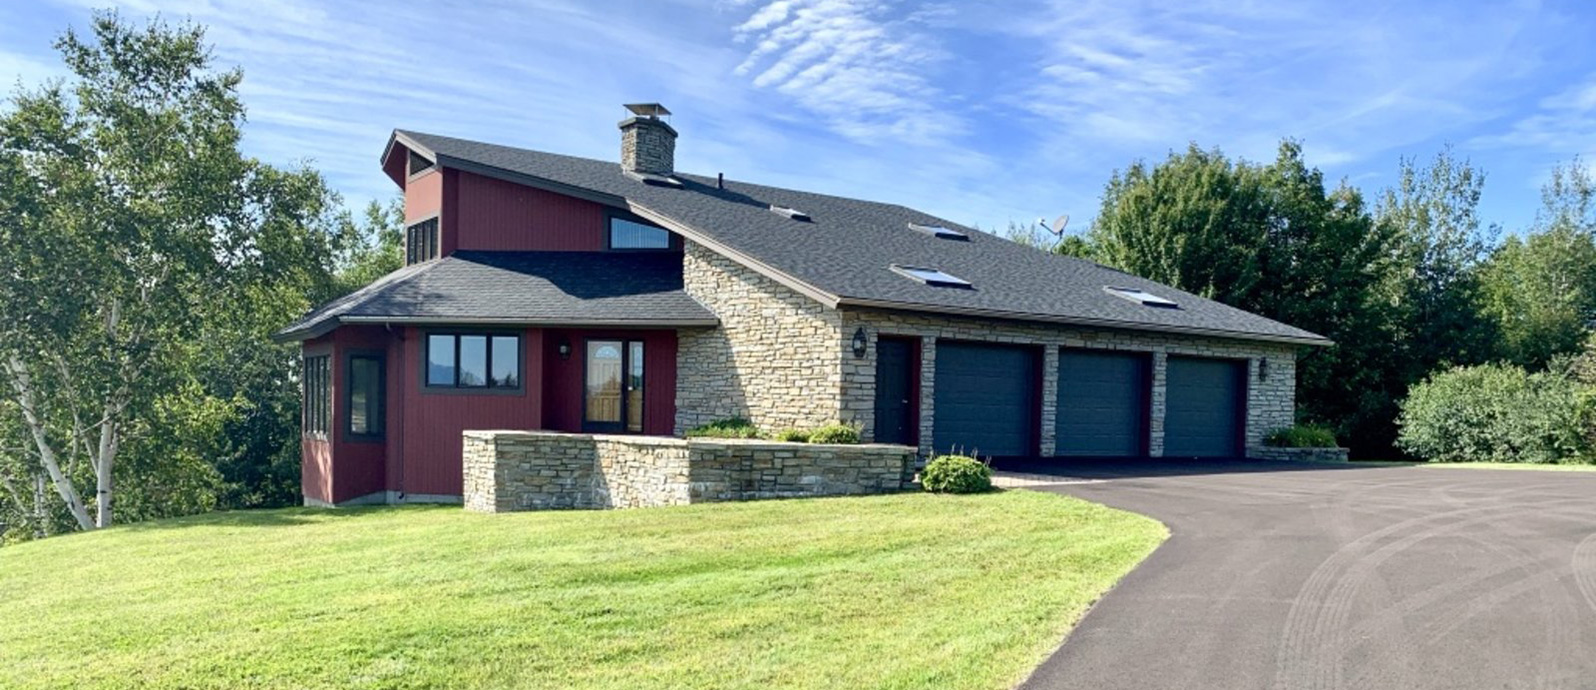 Contemporary Home for Sale in Saint Albans Vermont